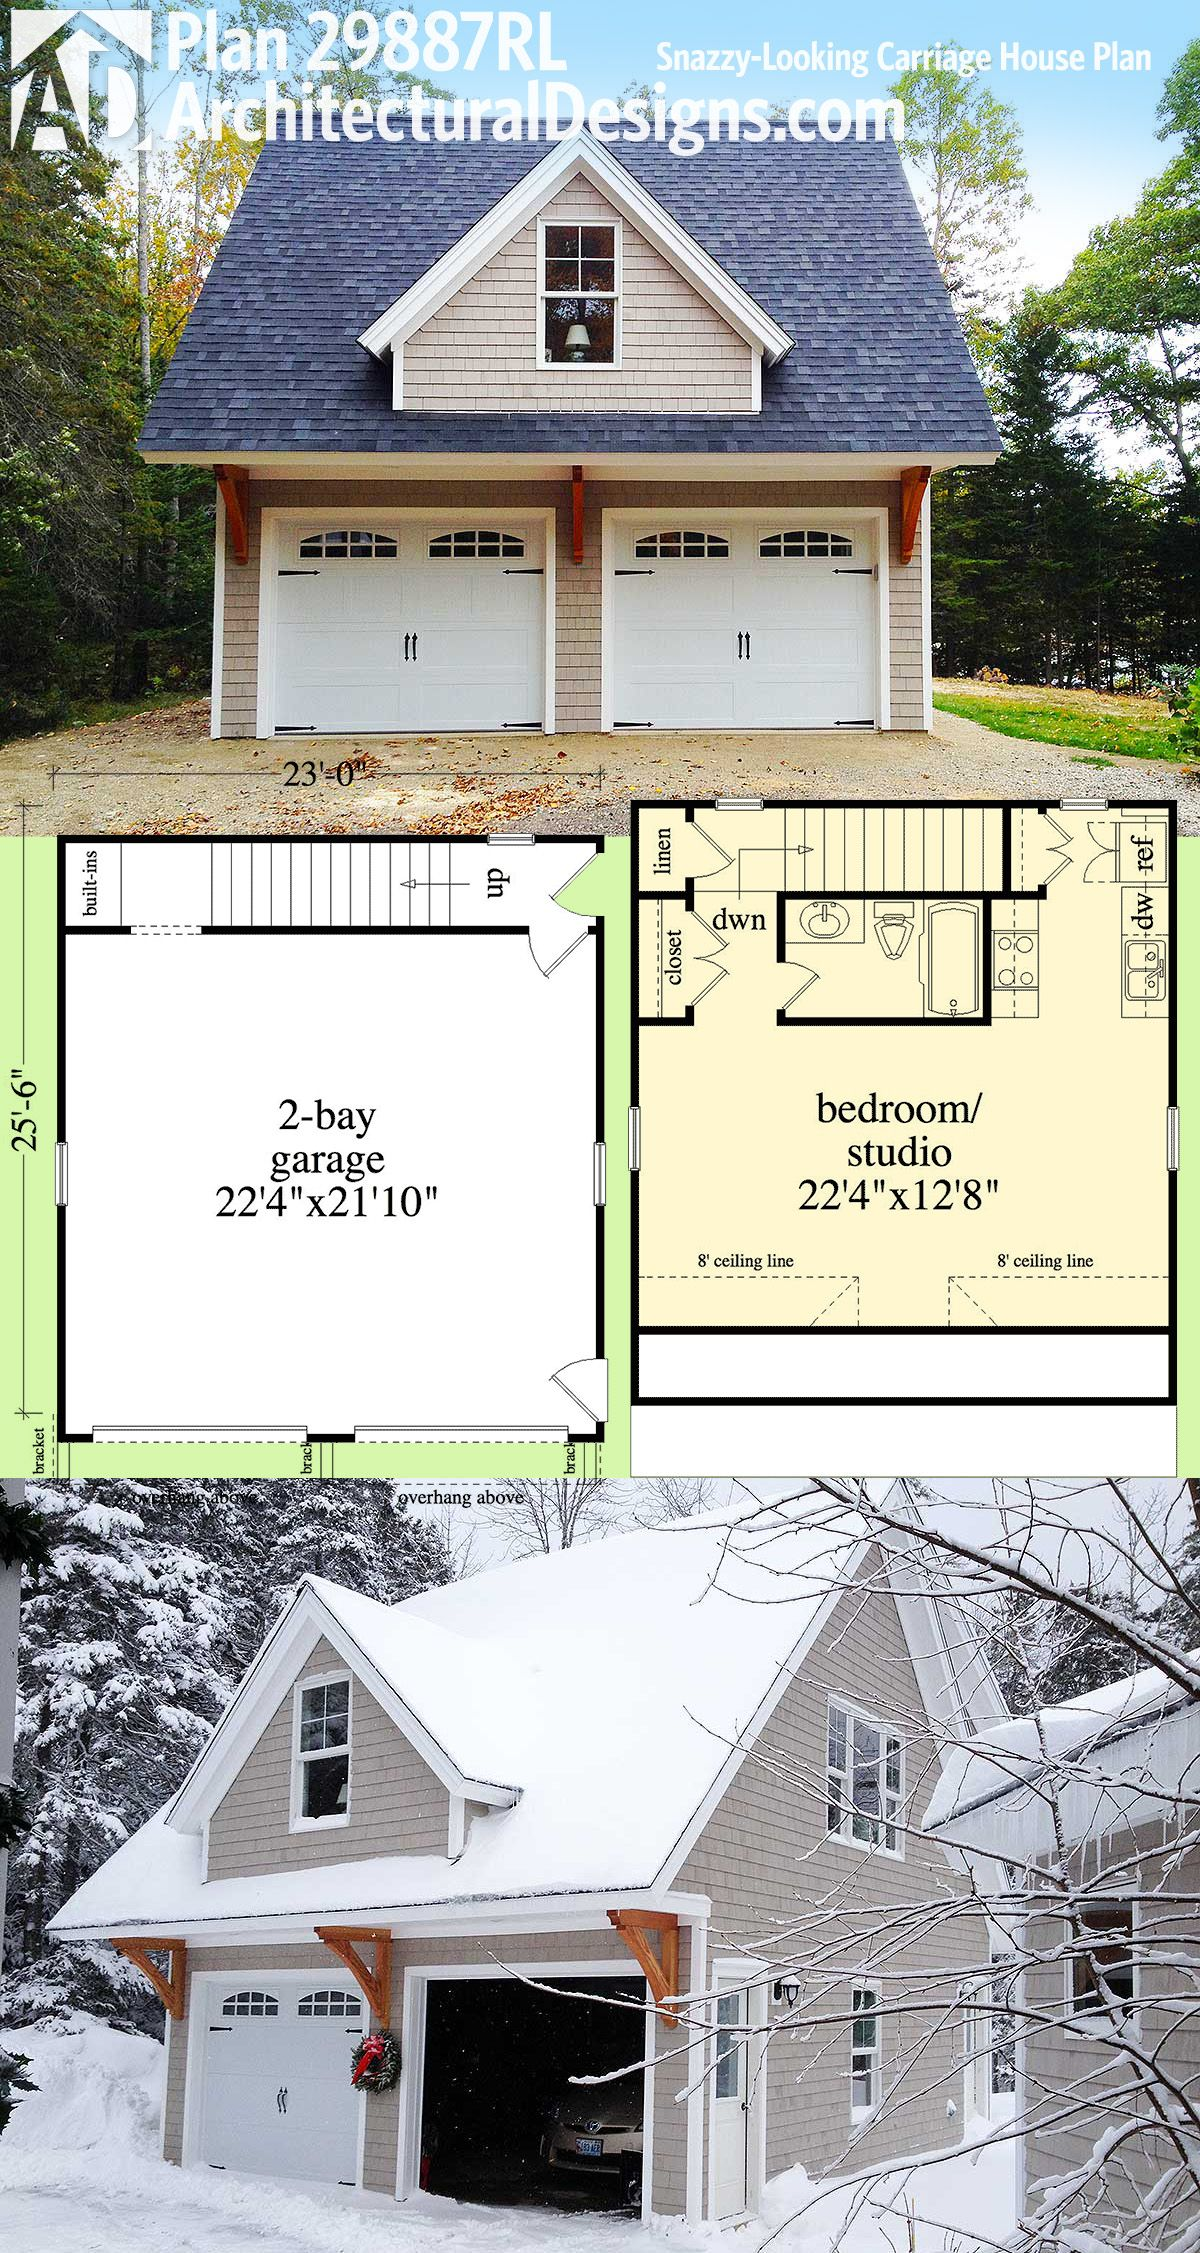 Plan 29887rl snazzy looking carriage house plan Carriage barn plans